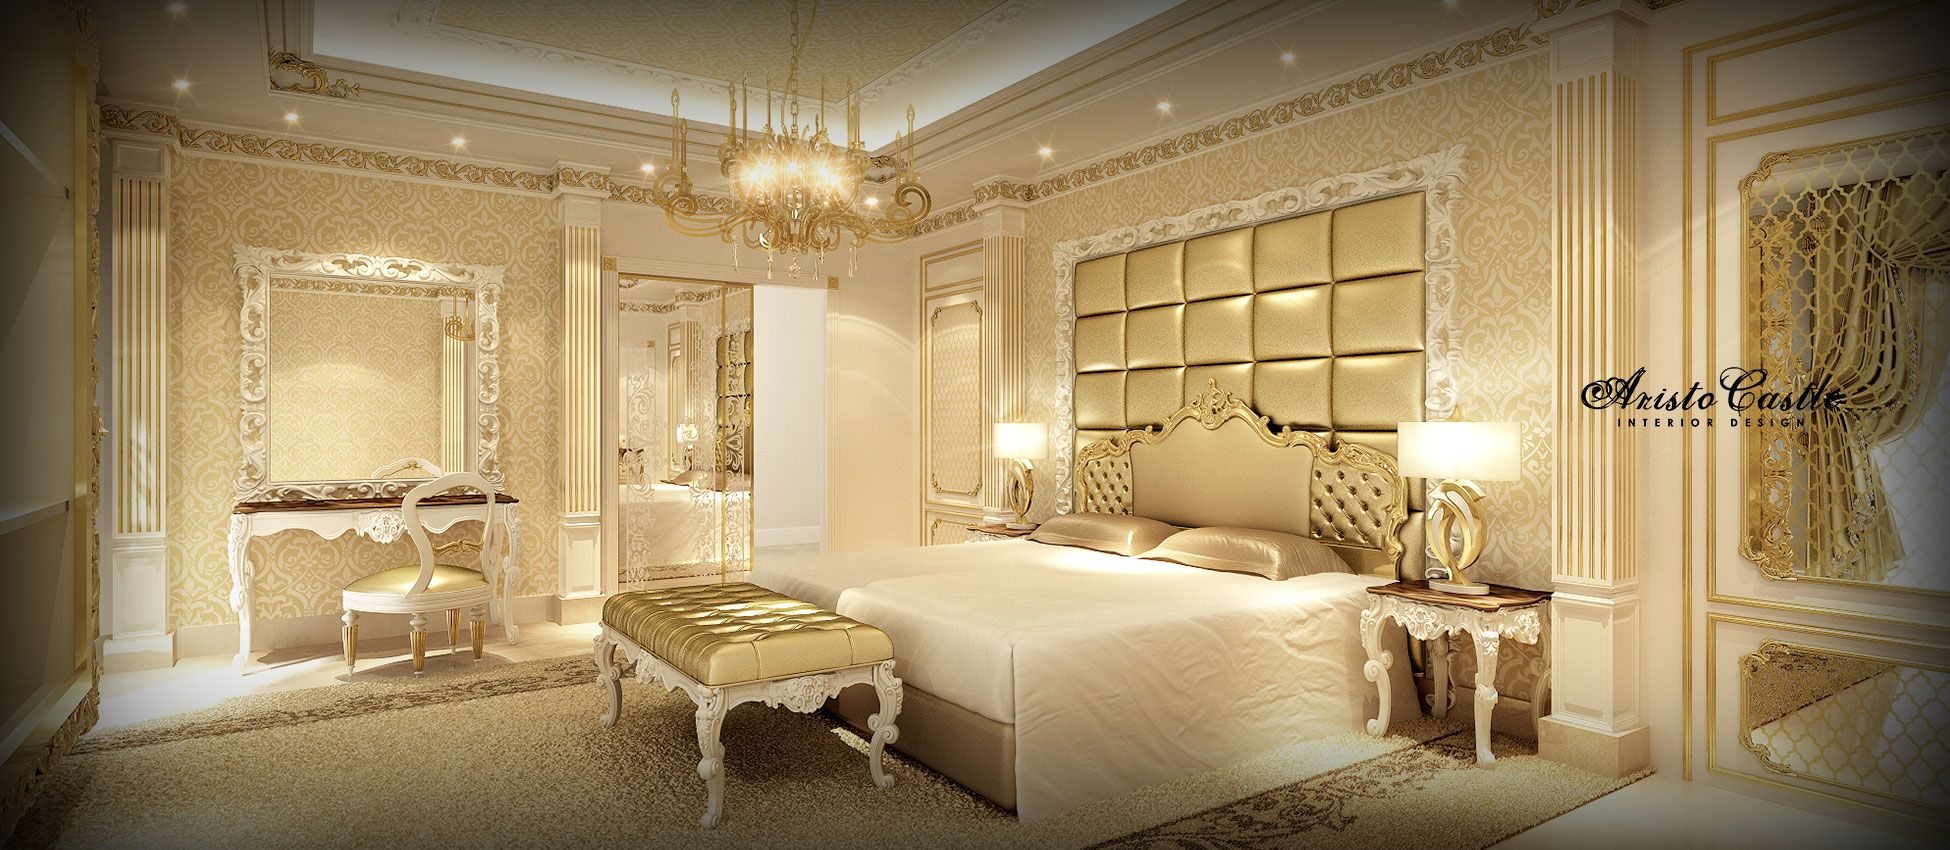 Dubai luxury interior design luxury master bedroom for Villa lotto interior design